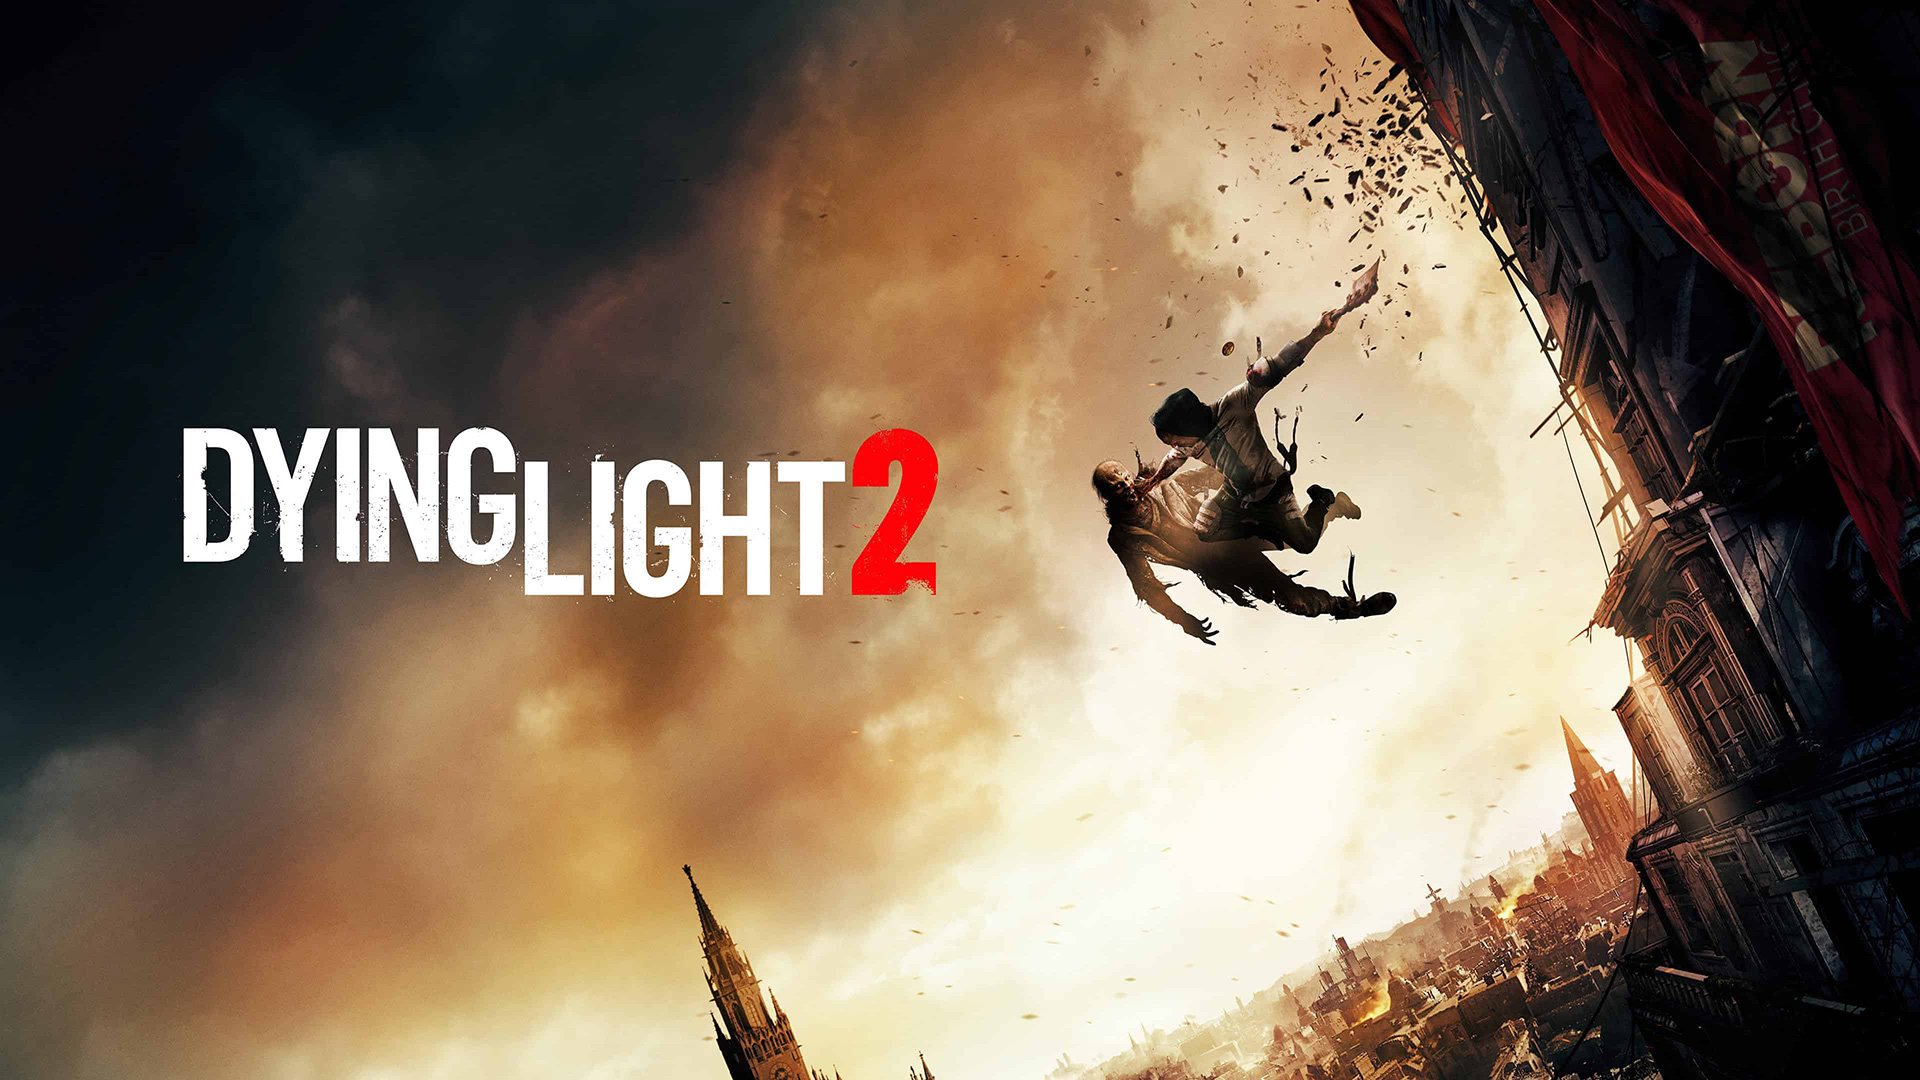 , Delay season strikes again as Dying Light 2 will be pushed back with no definite release date, Gadget Pilipinas, Gadget Pilipinas